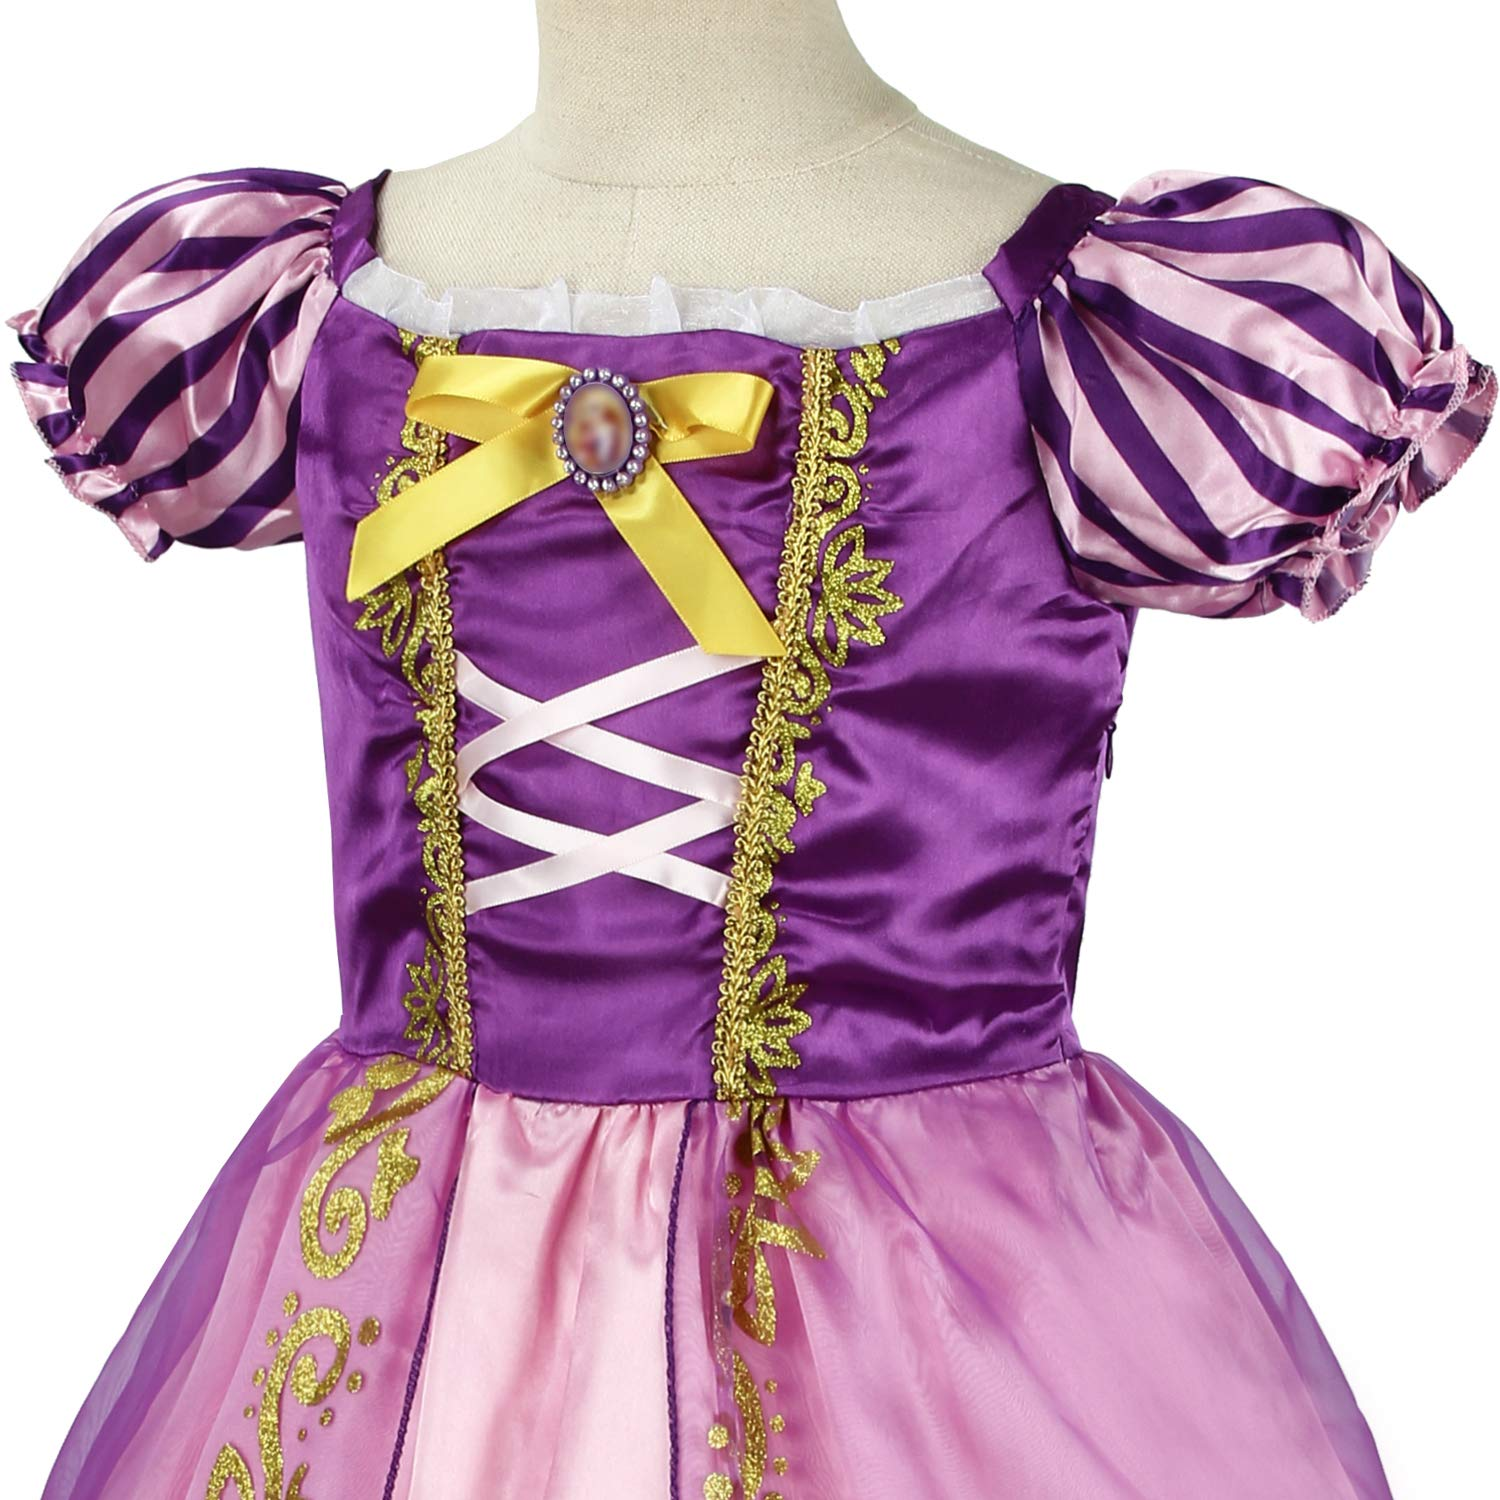 Rapunzel Princess Dress Girls Cosplay Costume Kids Floral Puffy Dresses for Summer Pageant Fancy Dress Up Party Outfits Halloween Christmas Birthday Maxi Carnival Evening